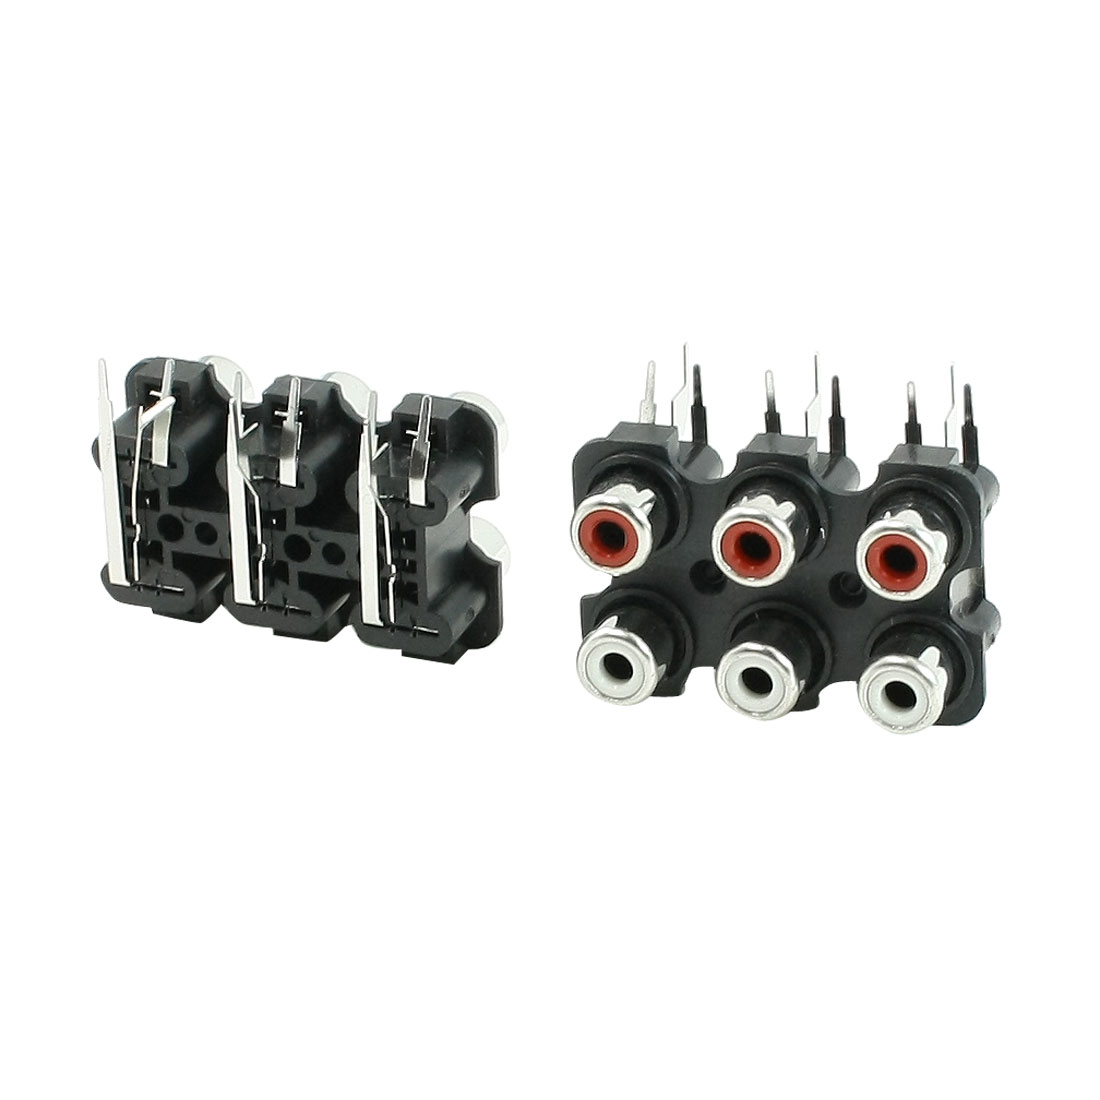 2 Pcs 6 RCA PCB Mount Female Outlet Jack Connector RCA Socket Black